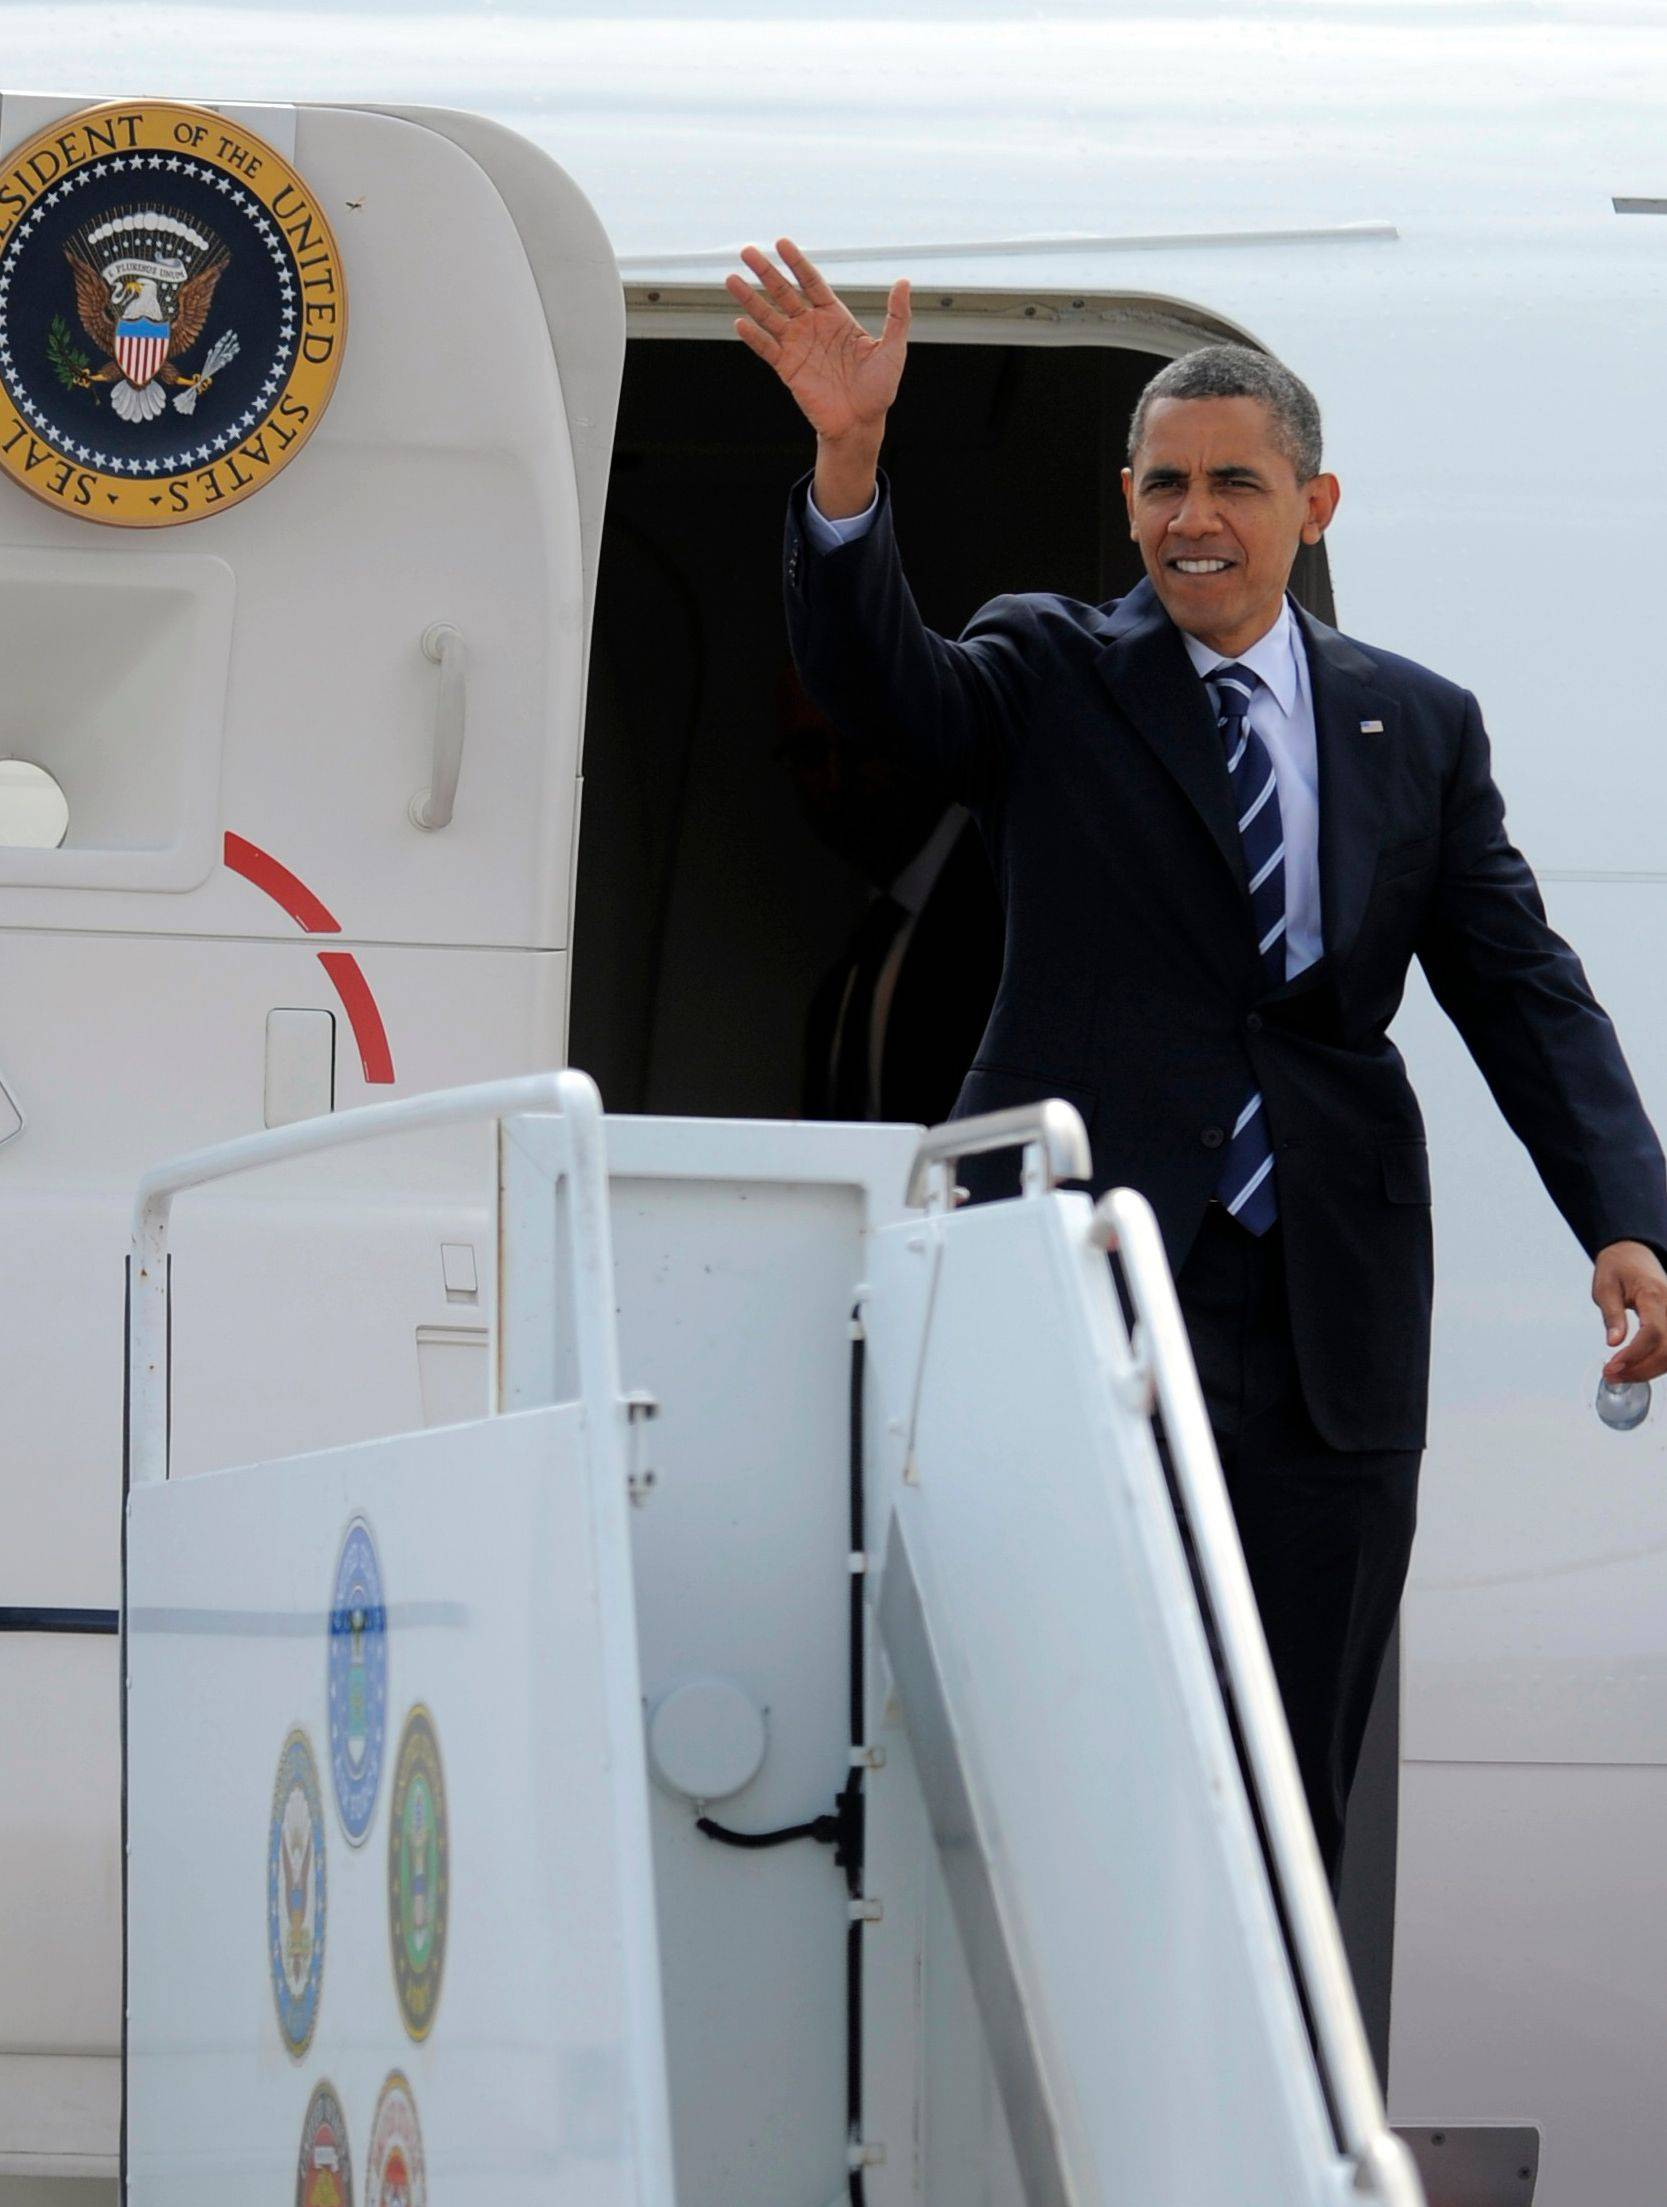 President Barack Obama waves arrives in Fort Collins, Colo., Tuesday to campaign after hours earlier assuring the nation his administration was capable of handling the problems Hurricane Isaac may cause.